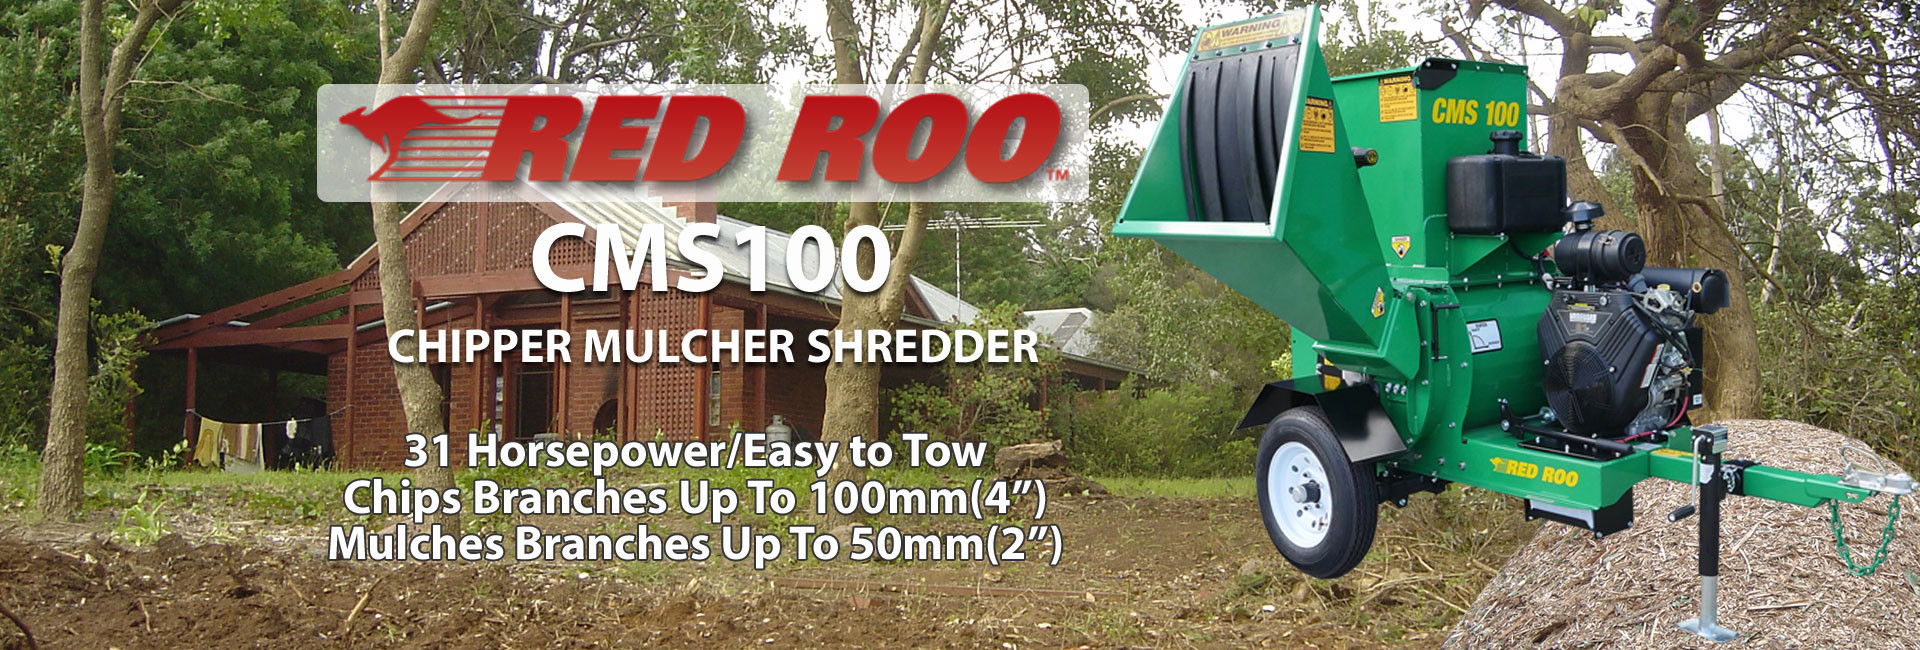 Red Roo CMS100 Chipper Muncher Shredder